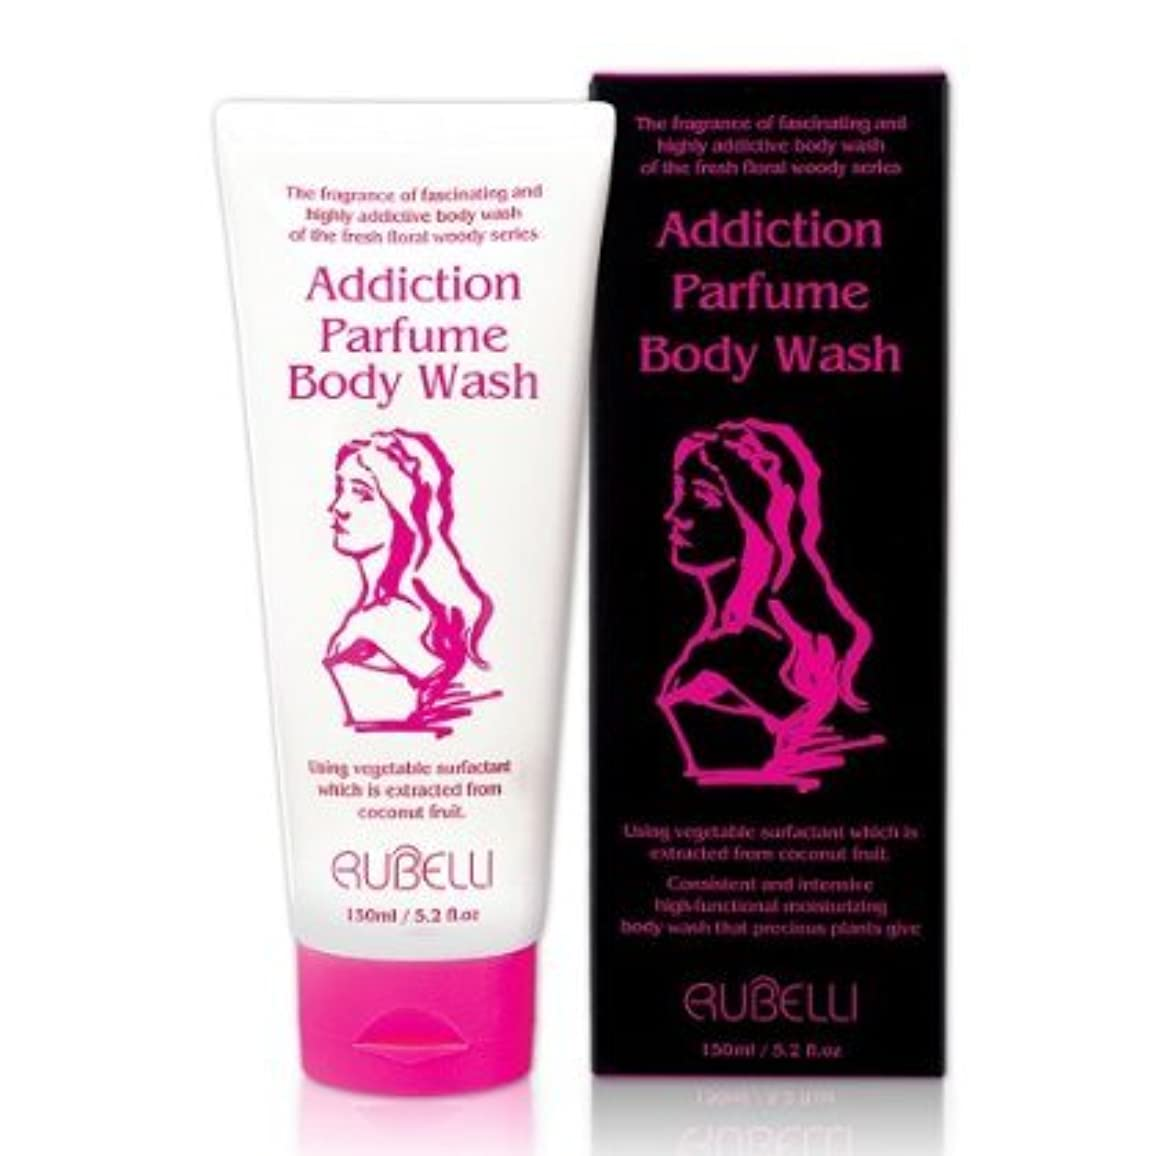 トンアルファベット褒賞[Rubelli]+[addiction parfume body wash]+[150ml / high-functional moisturizing, floral scent parfume body wash,...